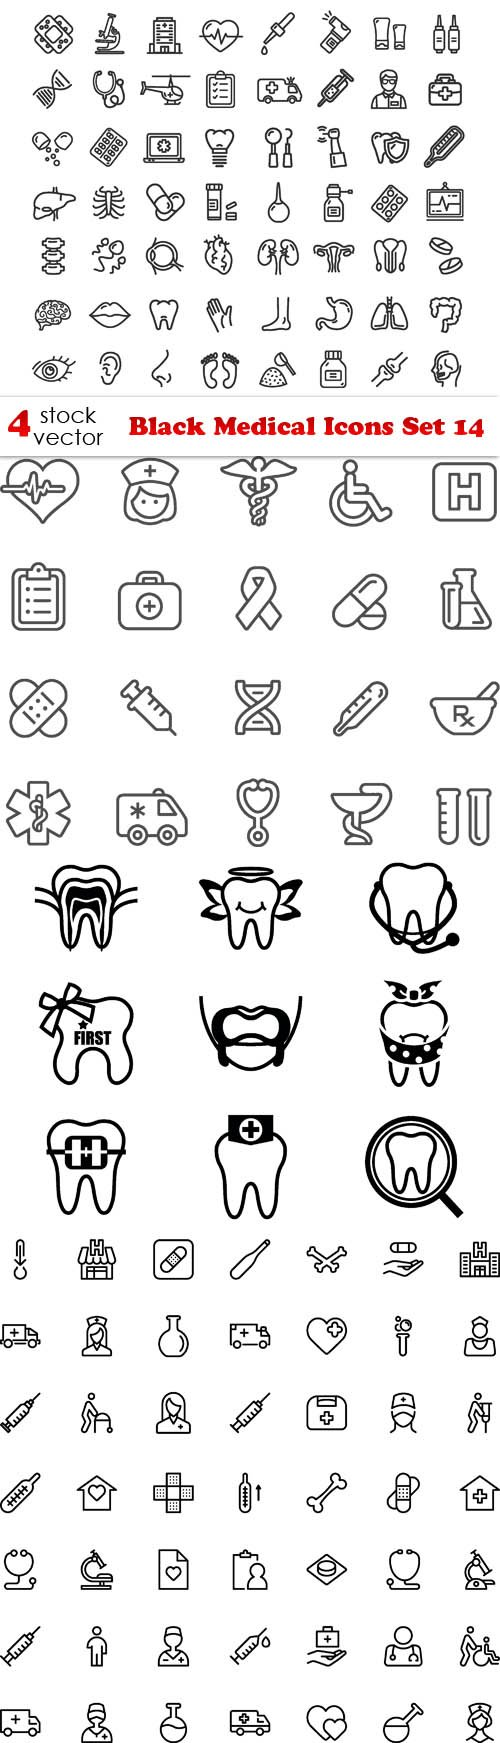 Vectors - Black Medical Icons Set 14